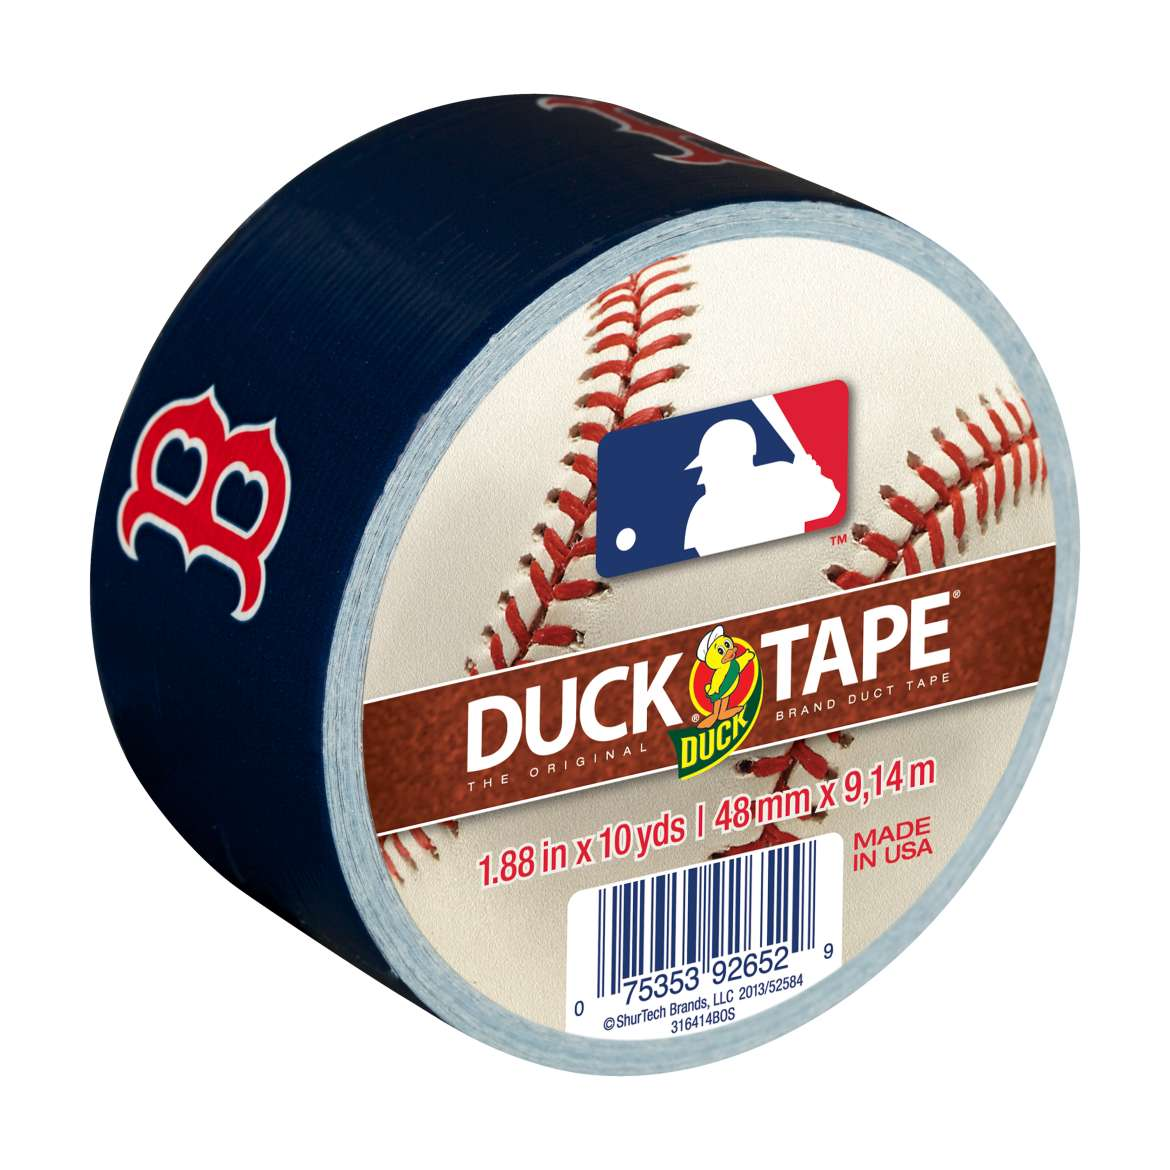 Duck Brand MLB Licensed Duct Tape, 1.88 in. x 10 yds., Boston Red Sox